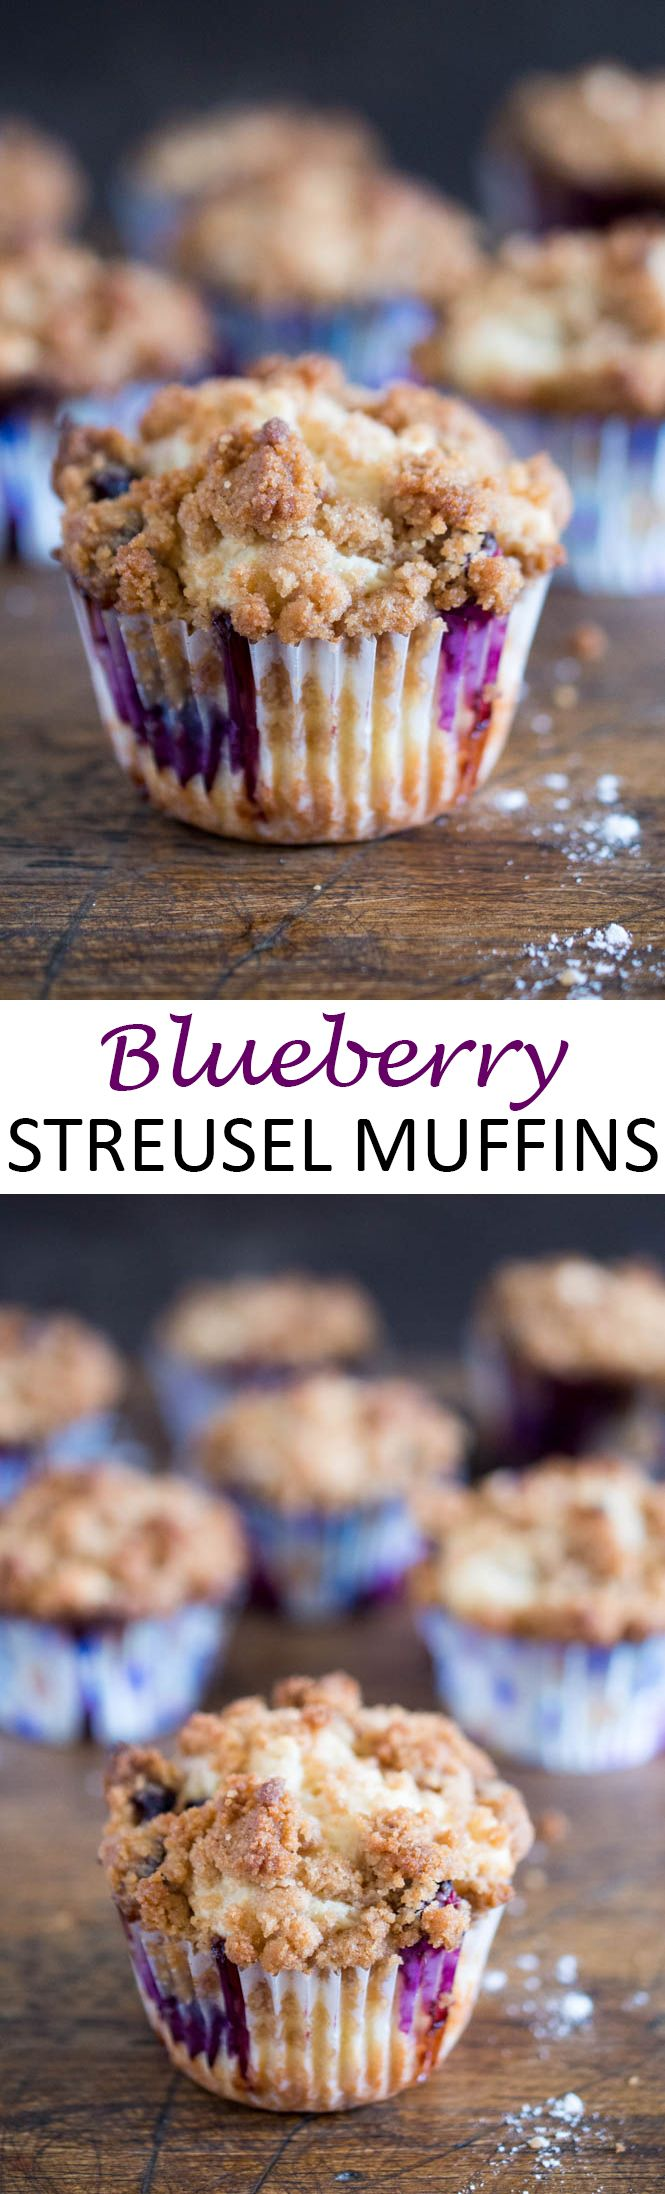 Bakery Style Blueberry Streusel Muffins. Loaded with fresh blueberries and sour cream for extra moist muffins.